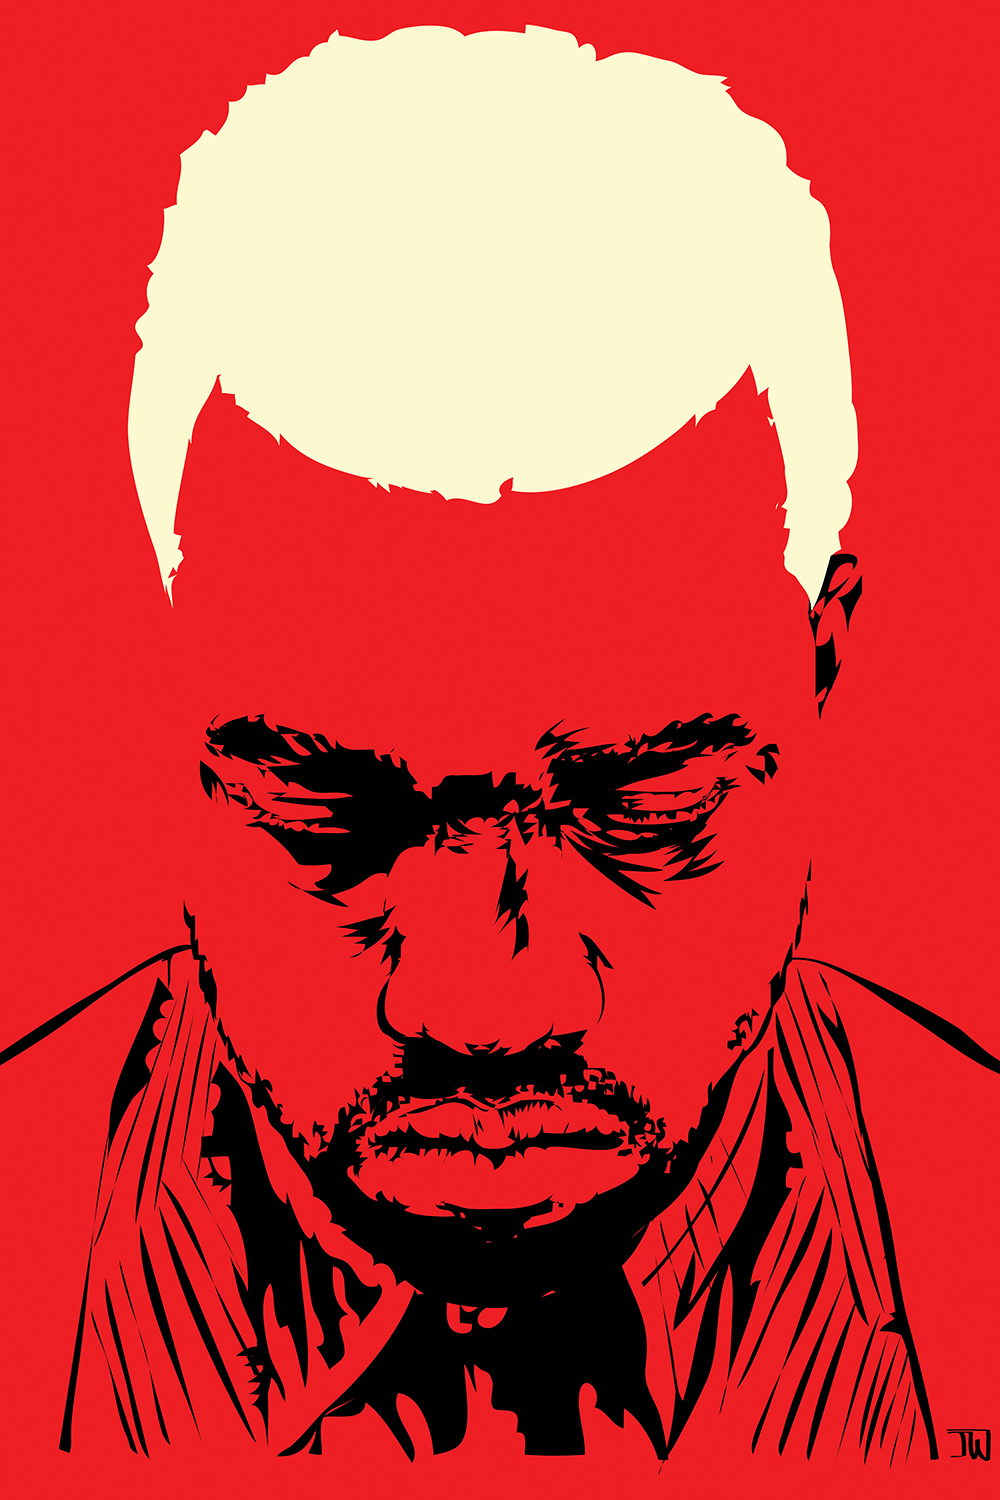 Red image of Kanye West looking downwards with blonde hair